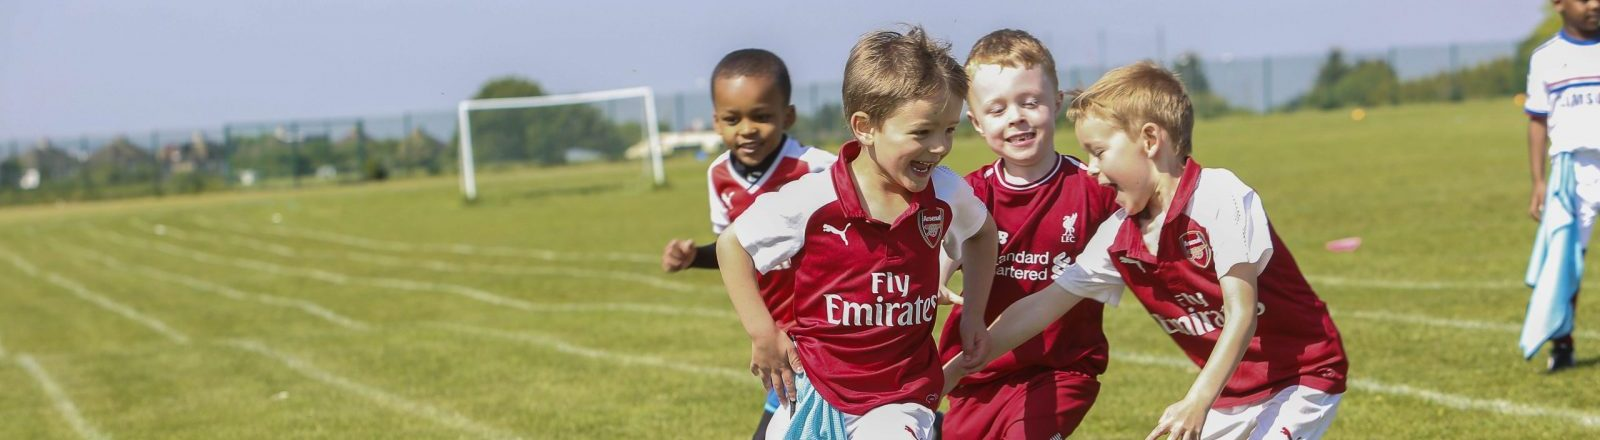 School Holiday Football Coaching & Camps London